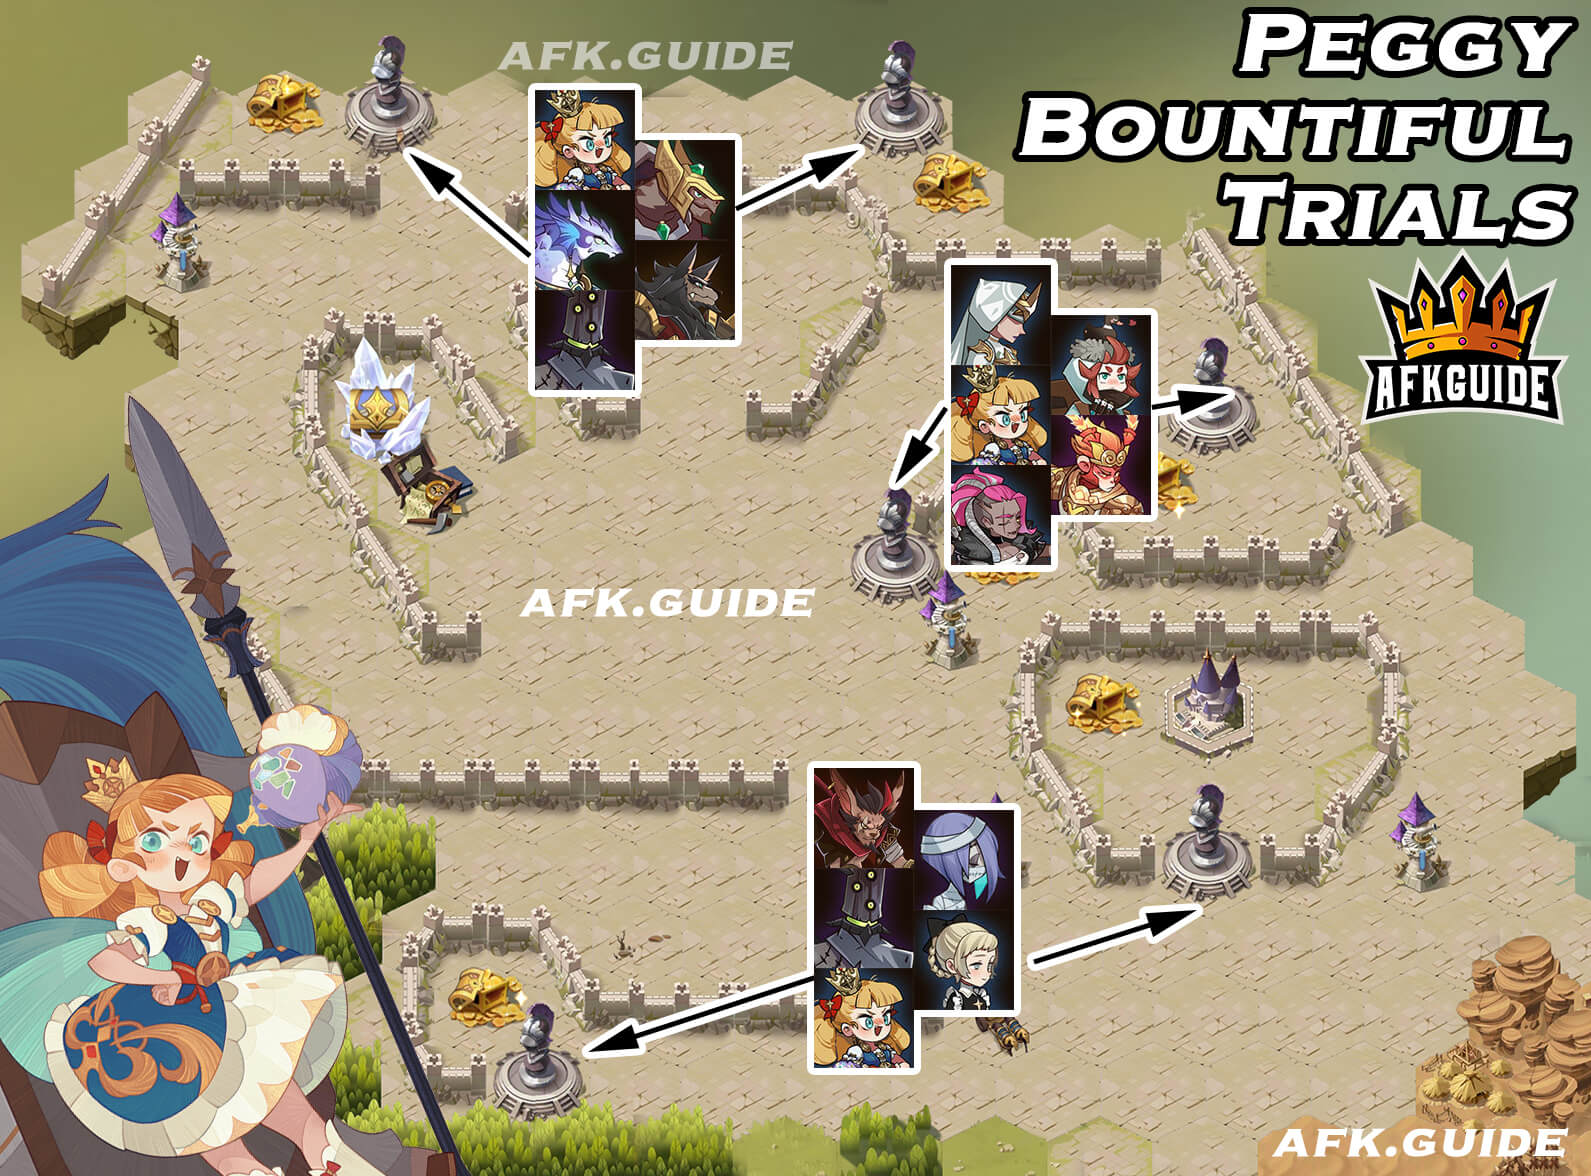 peggy bountiful trial guide